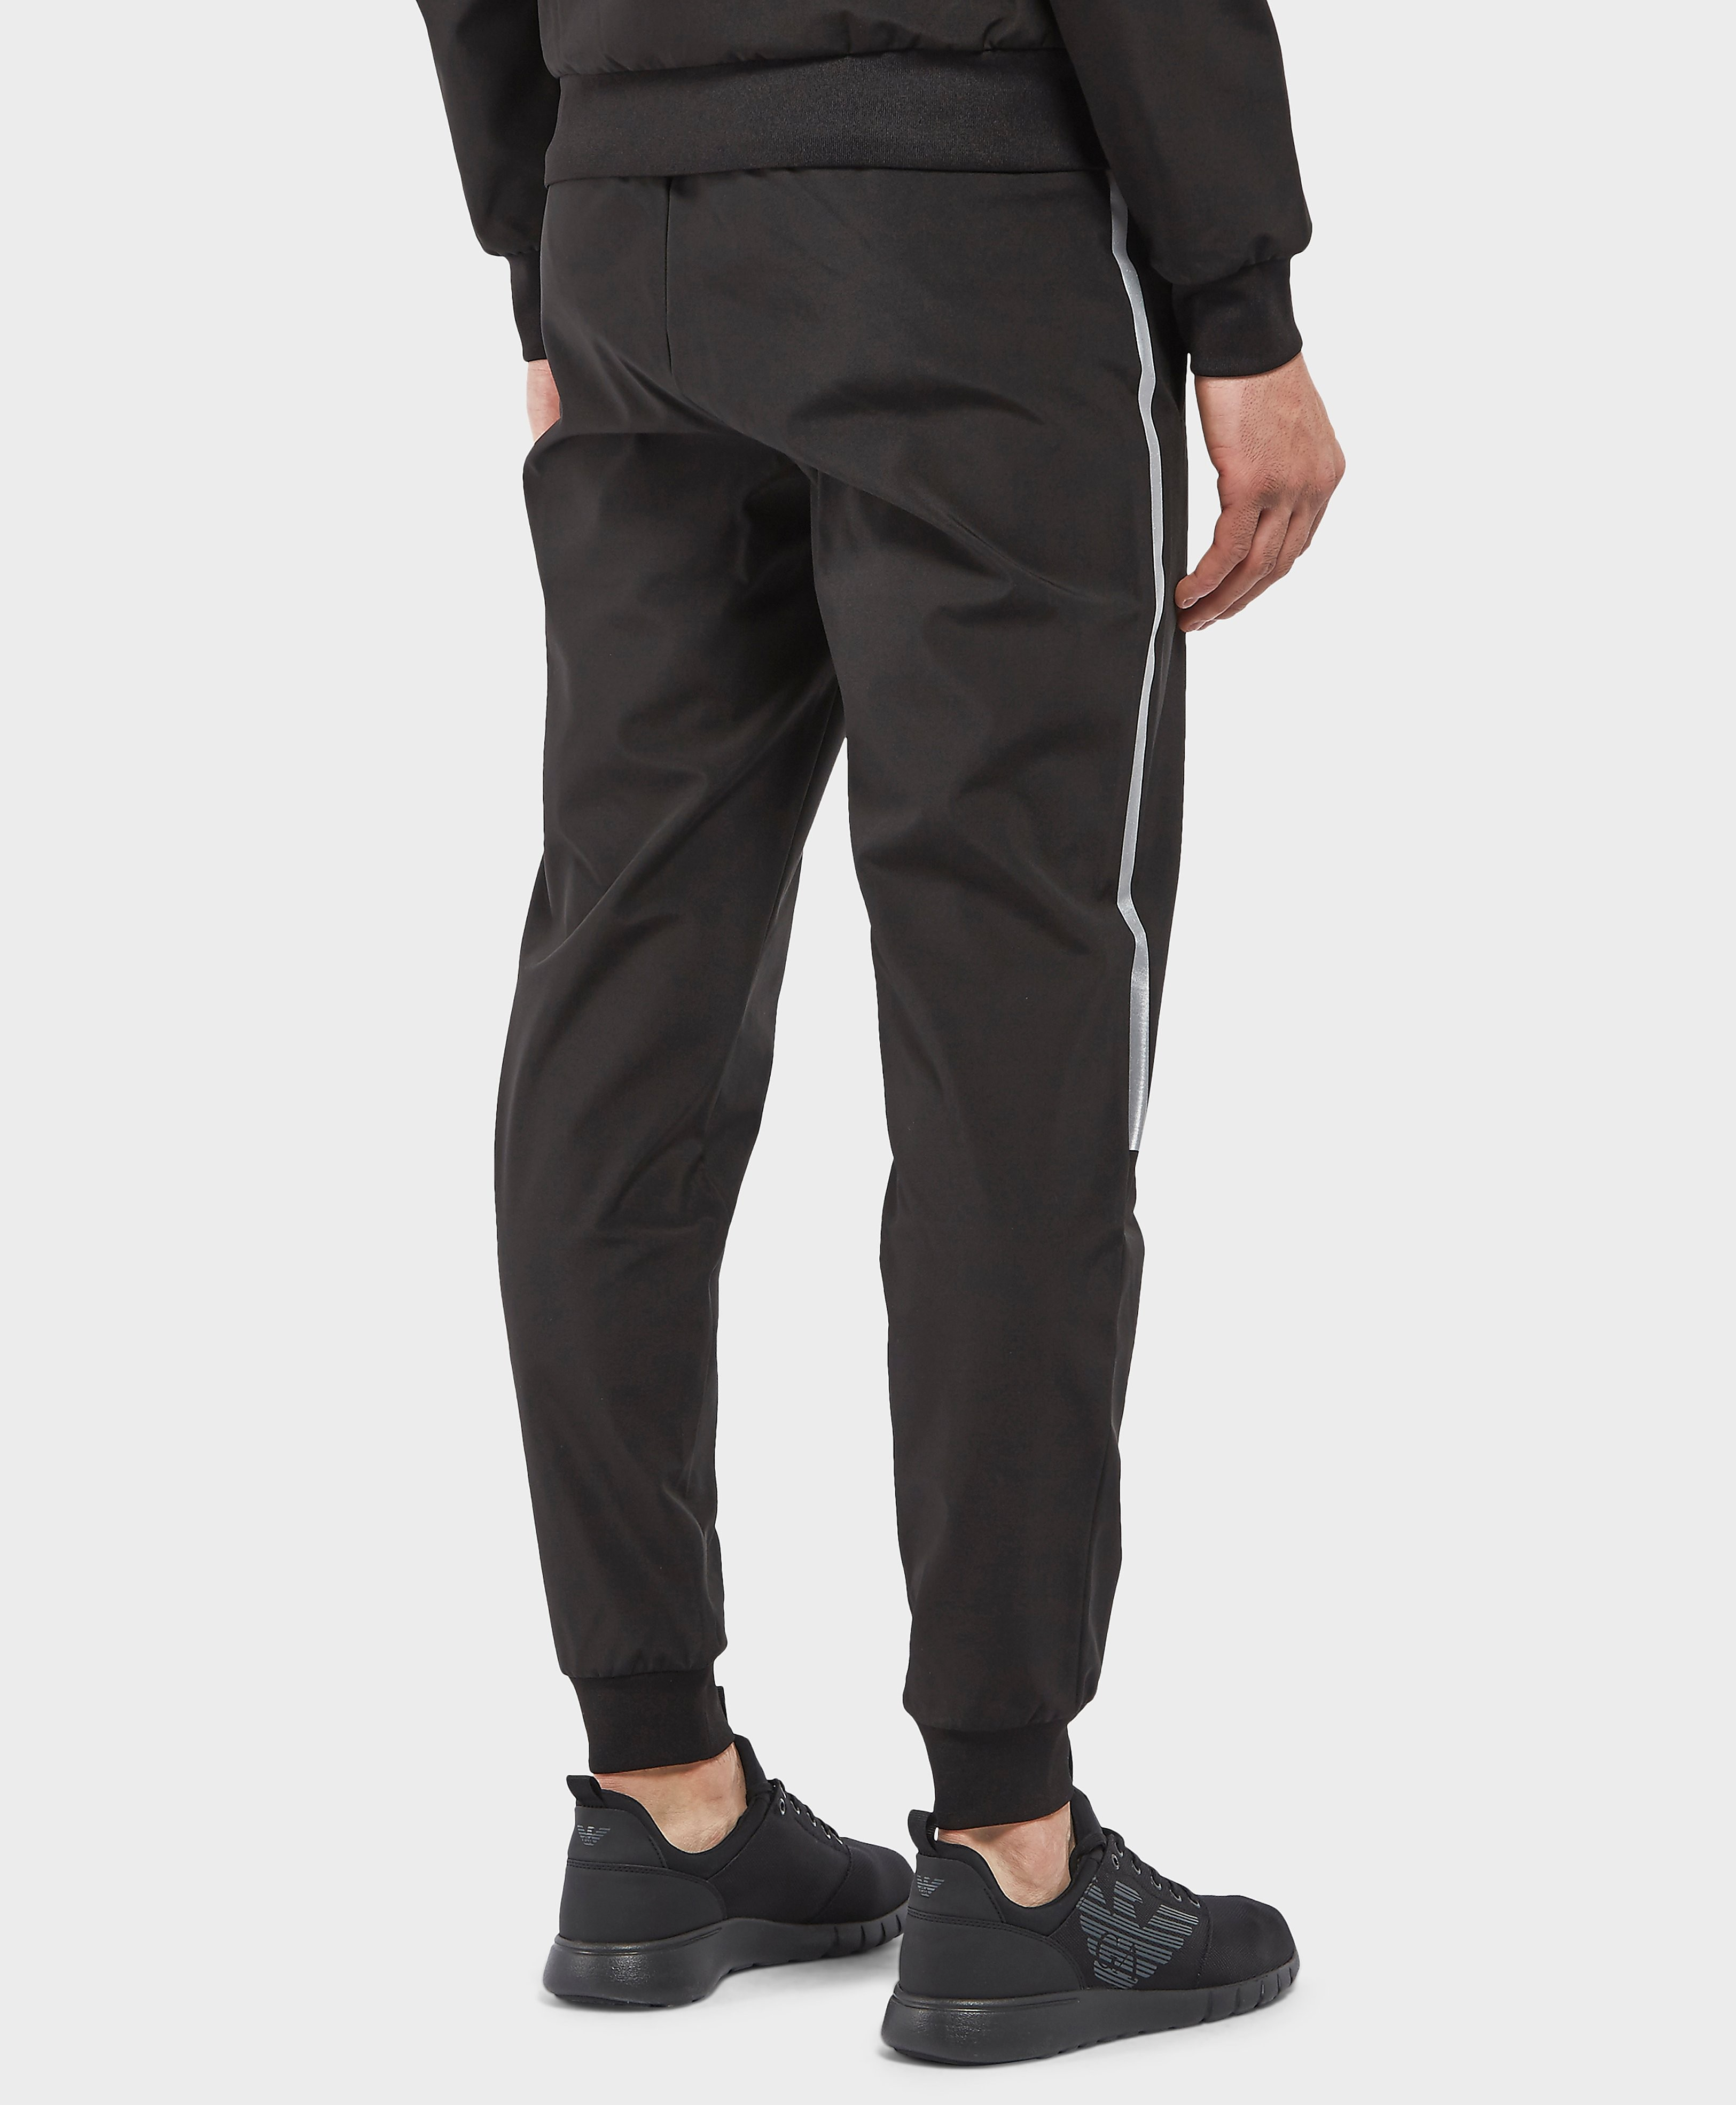 Emporio Armani EA7 Softshell Cuffed Track Pants - Exclusive